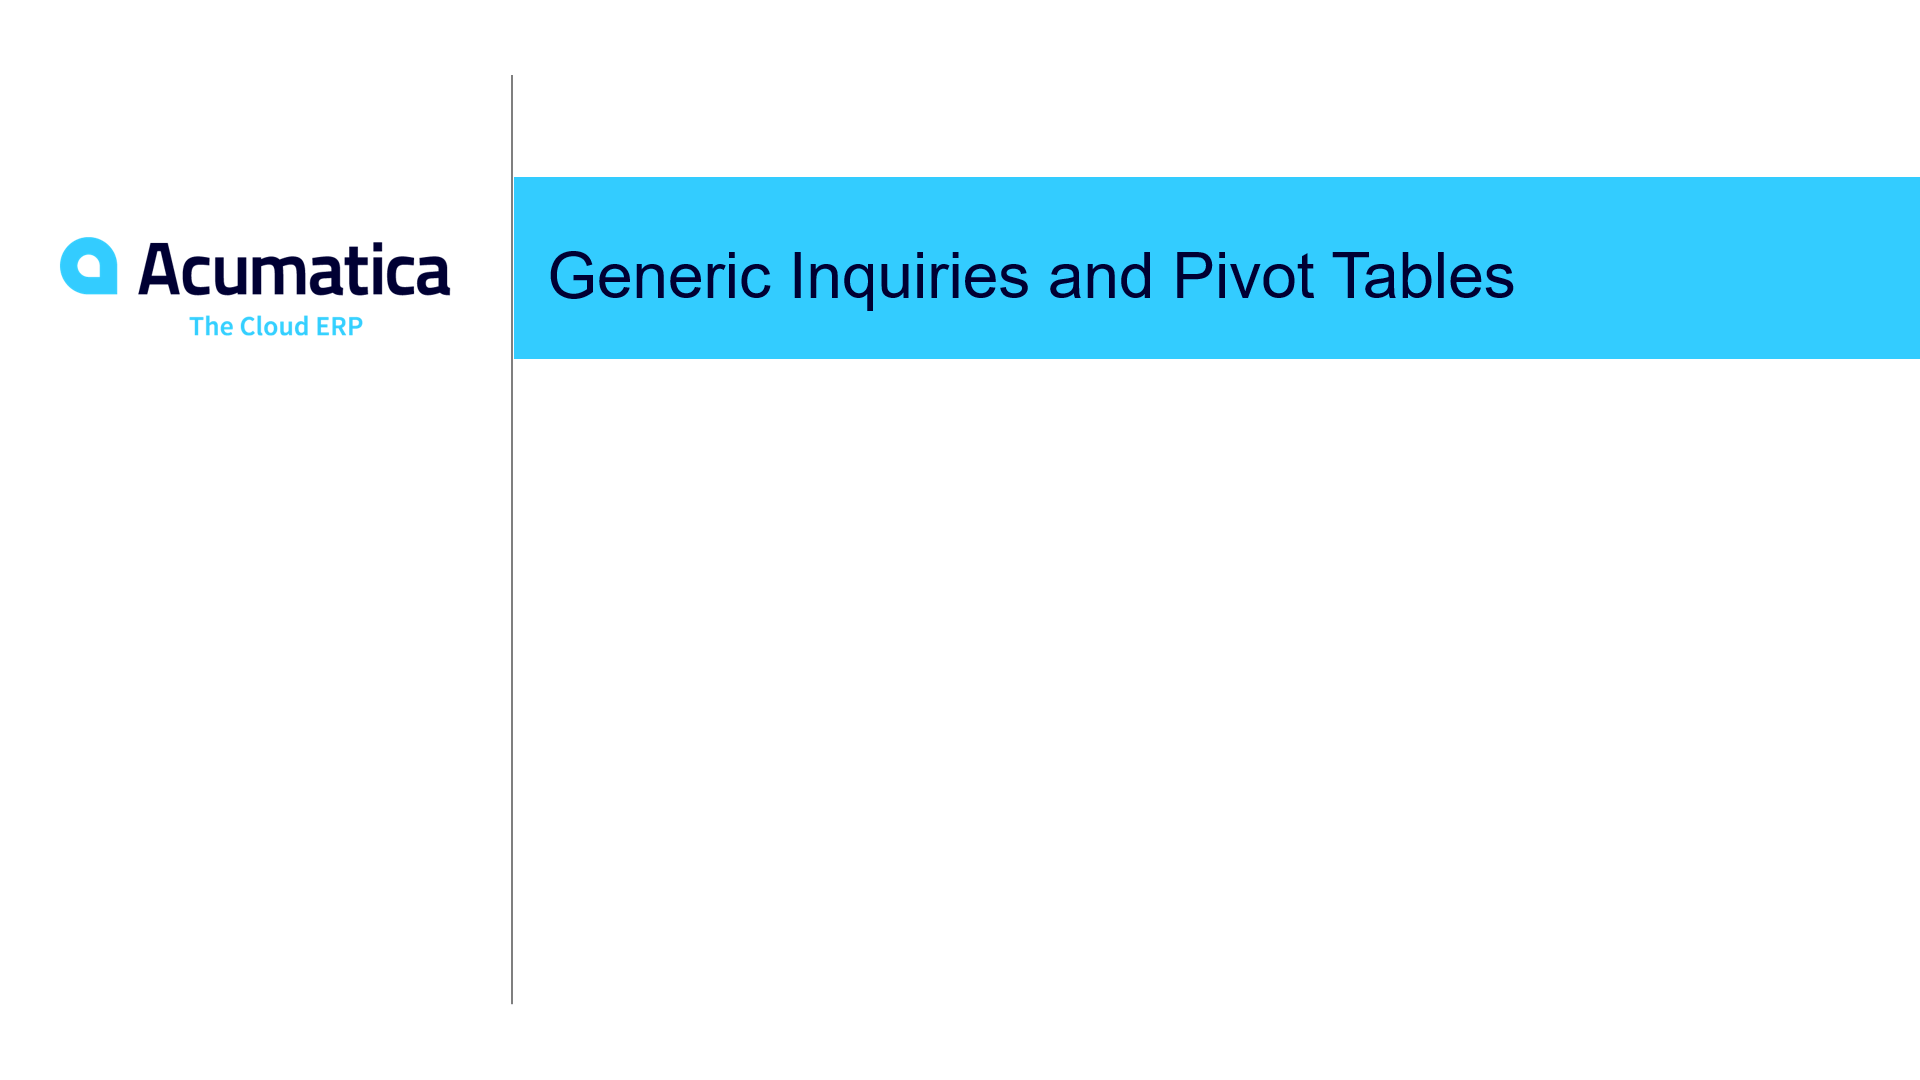 Generic Inquiries and Pivot Tables